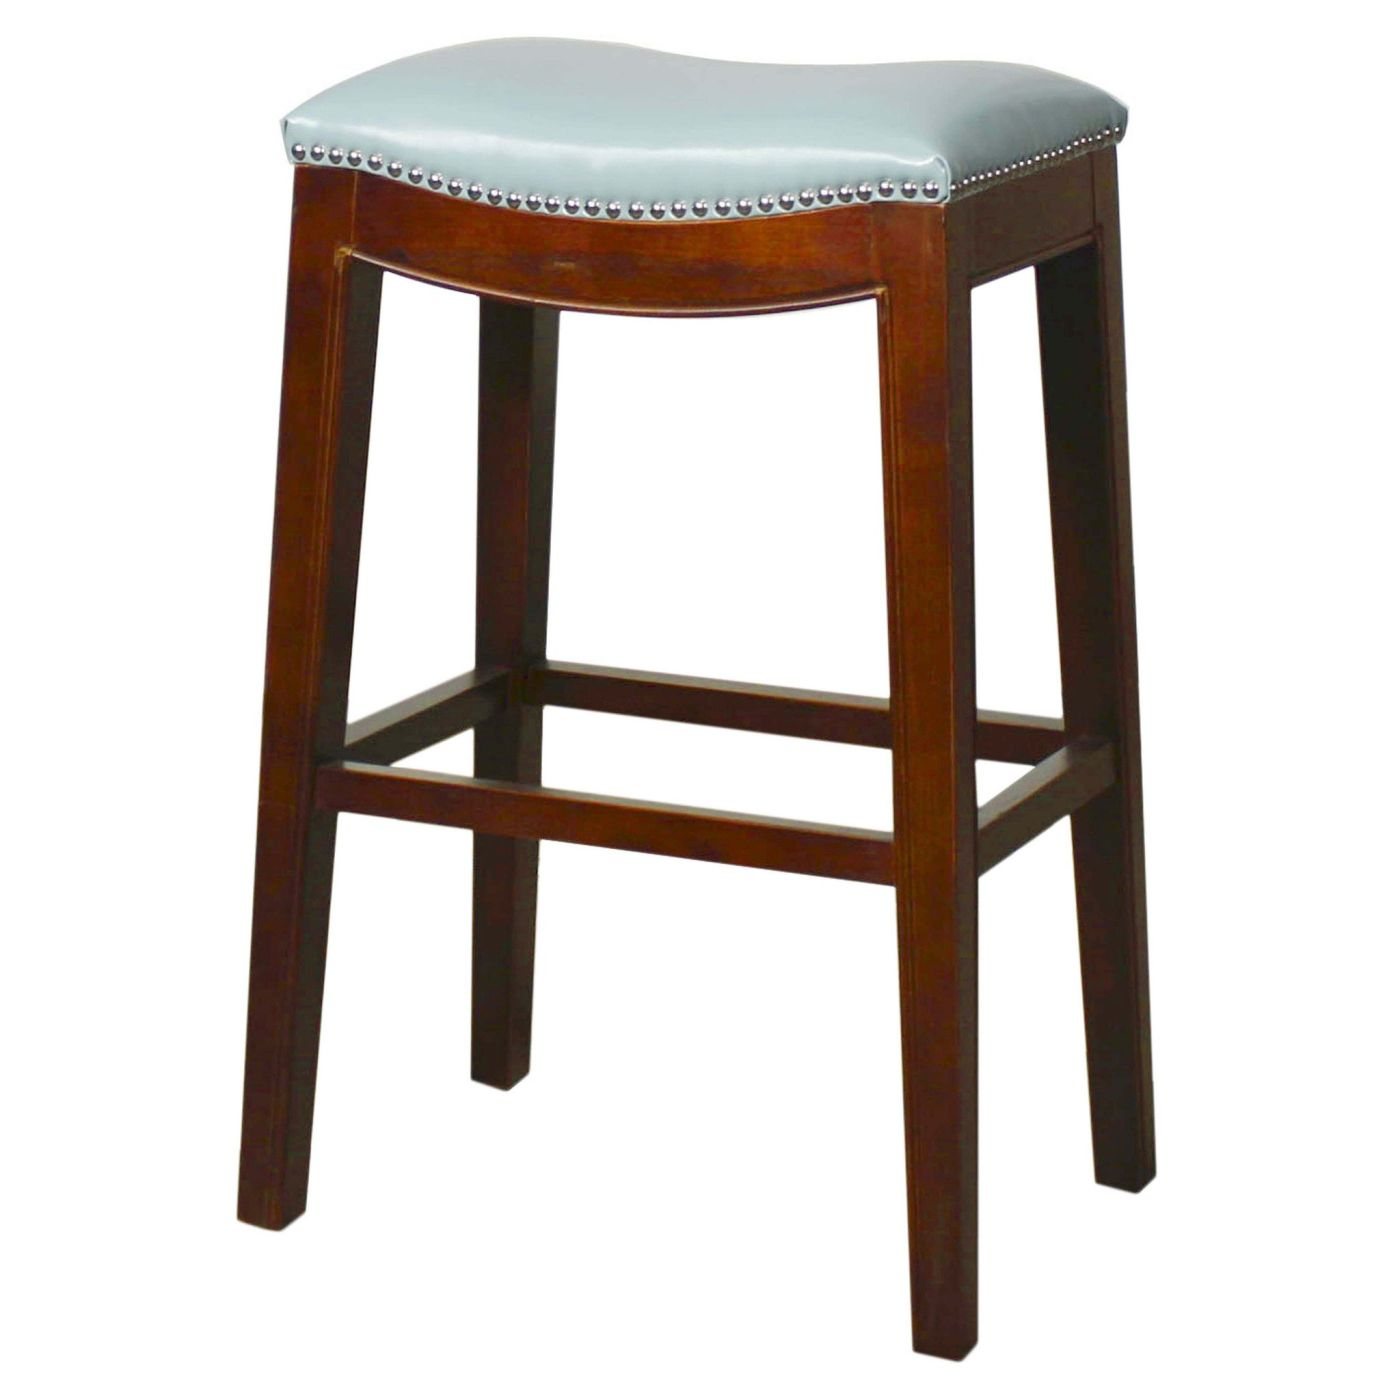 120c4968ad64 Bar Stools at Contemporary Furniture Warehouse